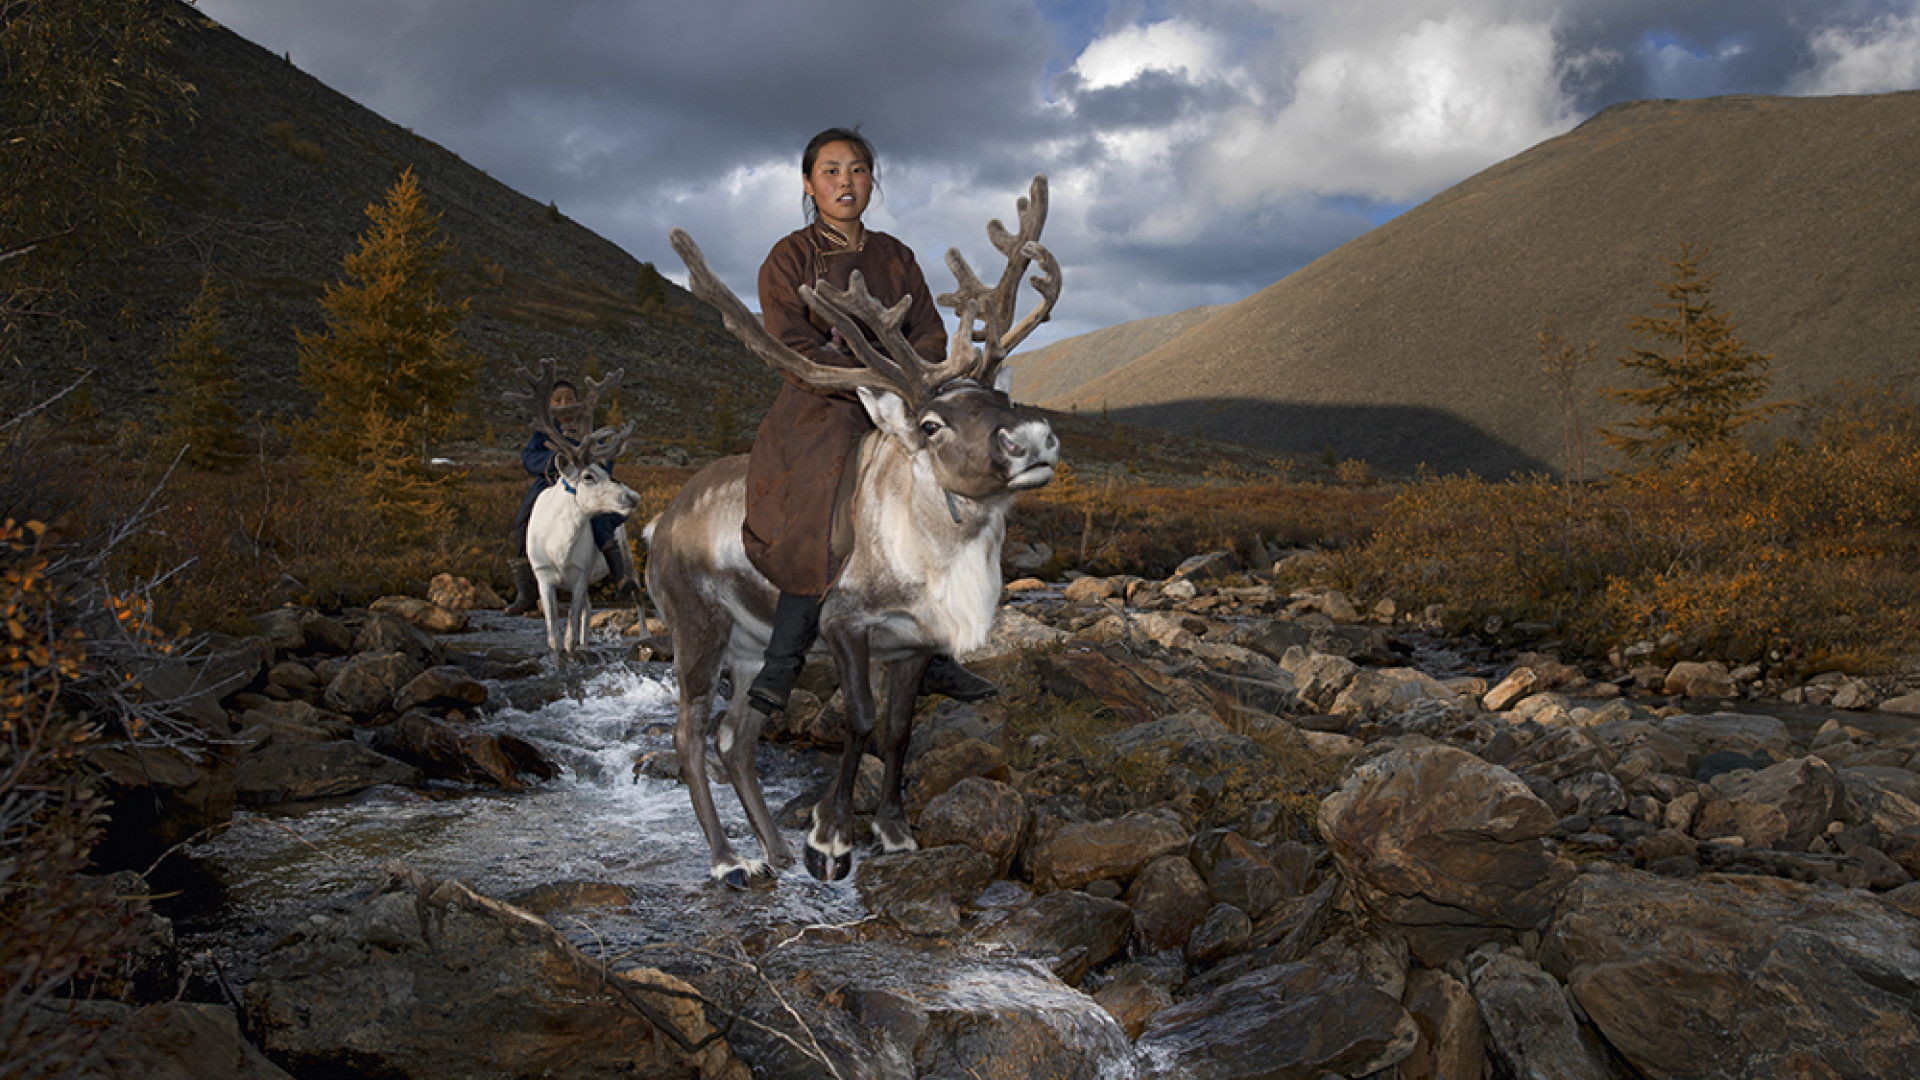 A mother and child ride reindeer on the Mongolian steppe